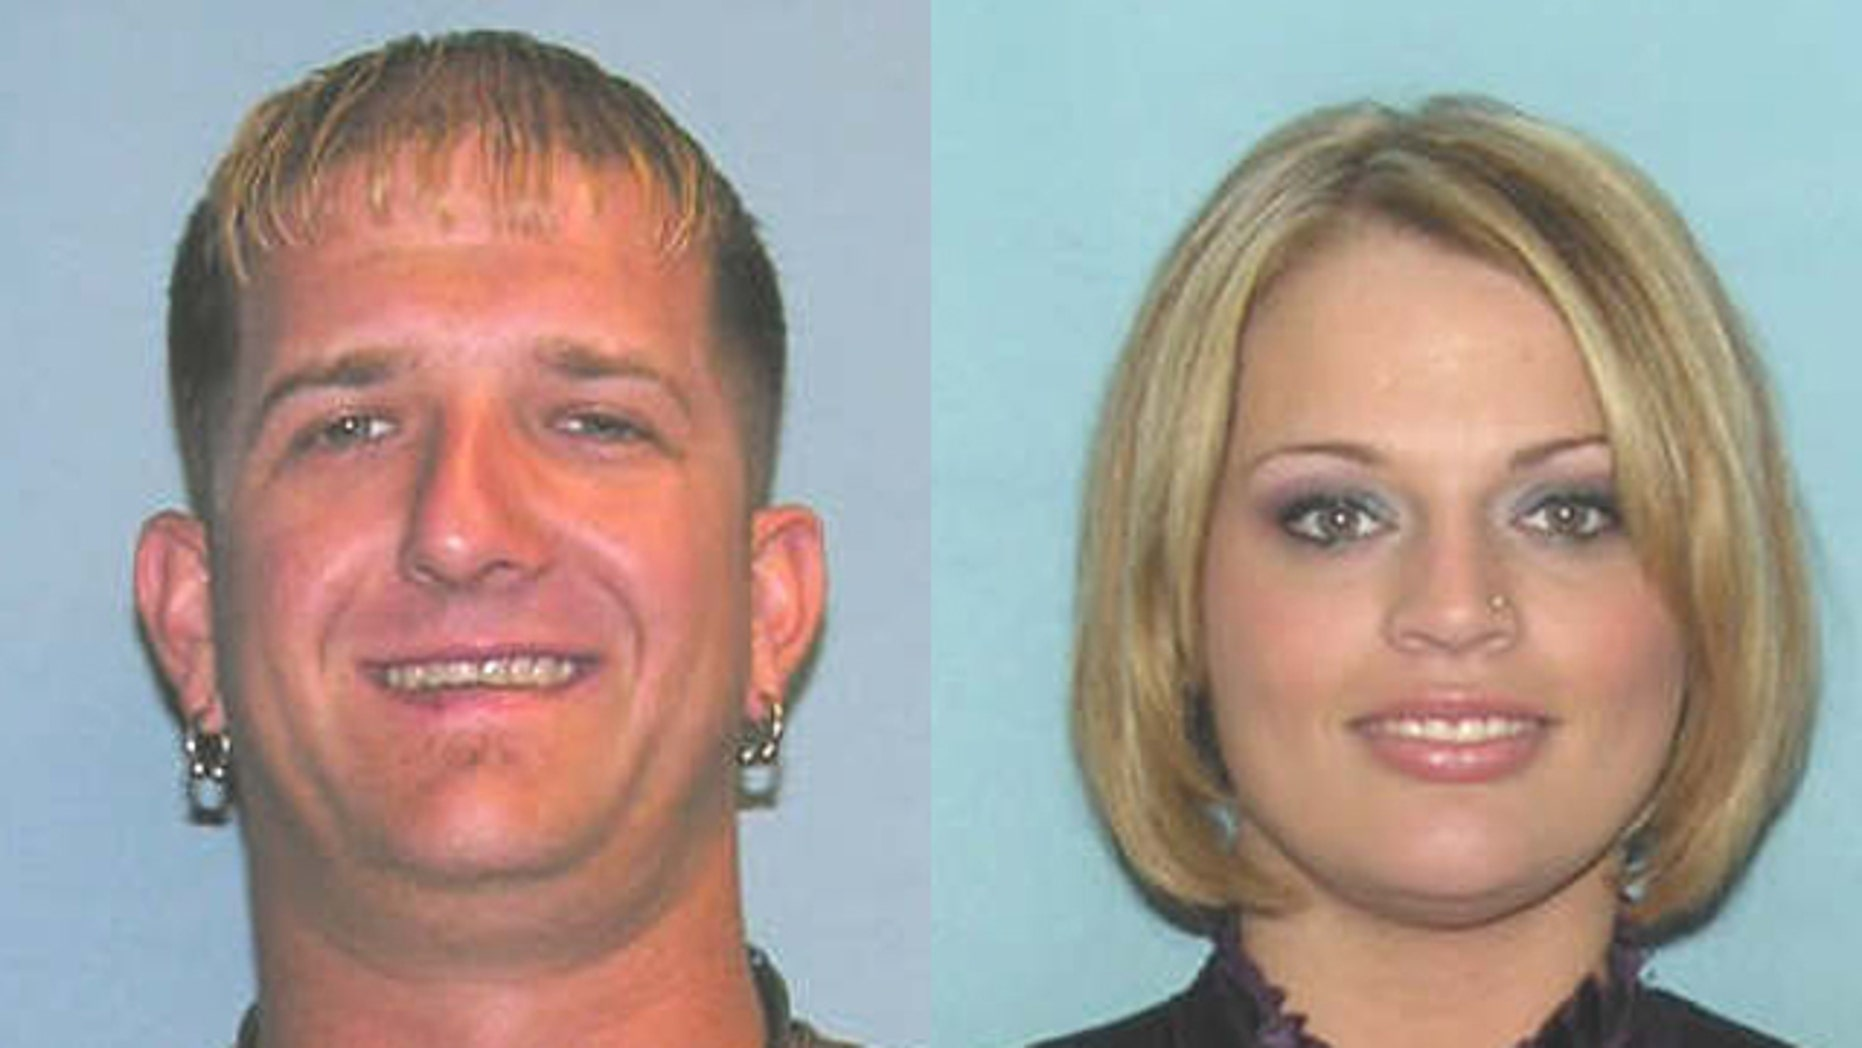 Authorities say Chancey Smith shot dead Amada Peake and her two children